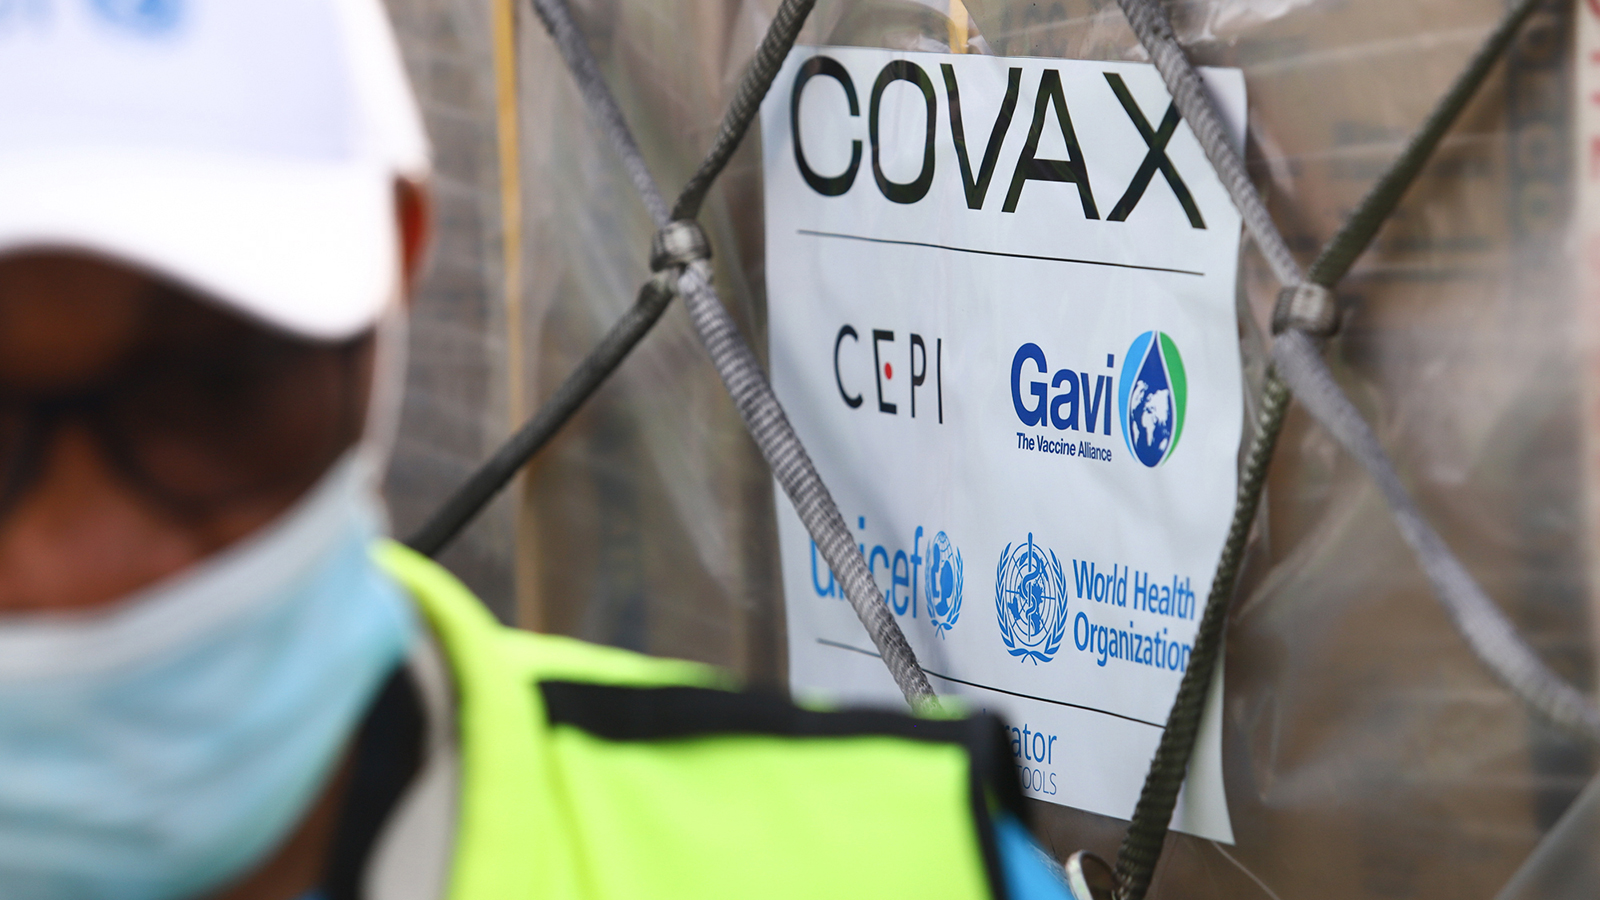 A shipment of Covid-19 vaccines through the COVAX global vaccination program is seen at the Kotoka International Airport in Accra, Ghana, on February 24.